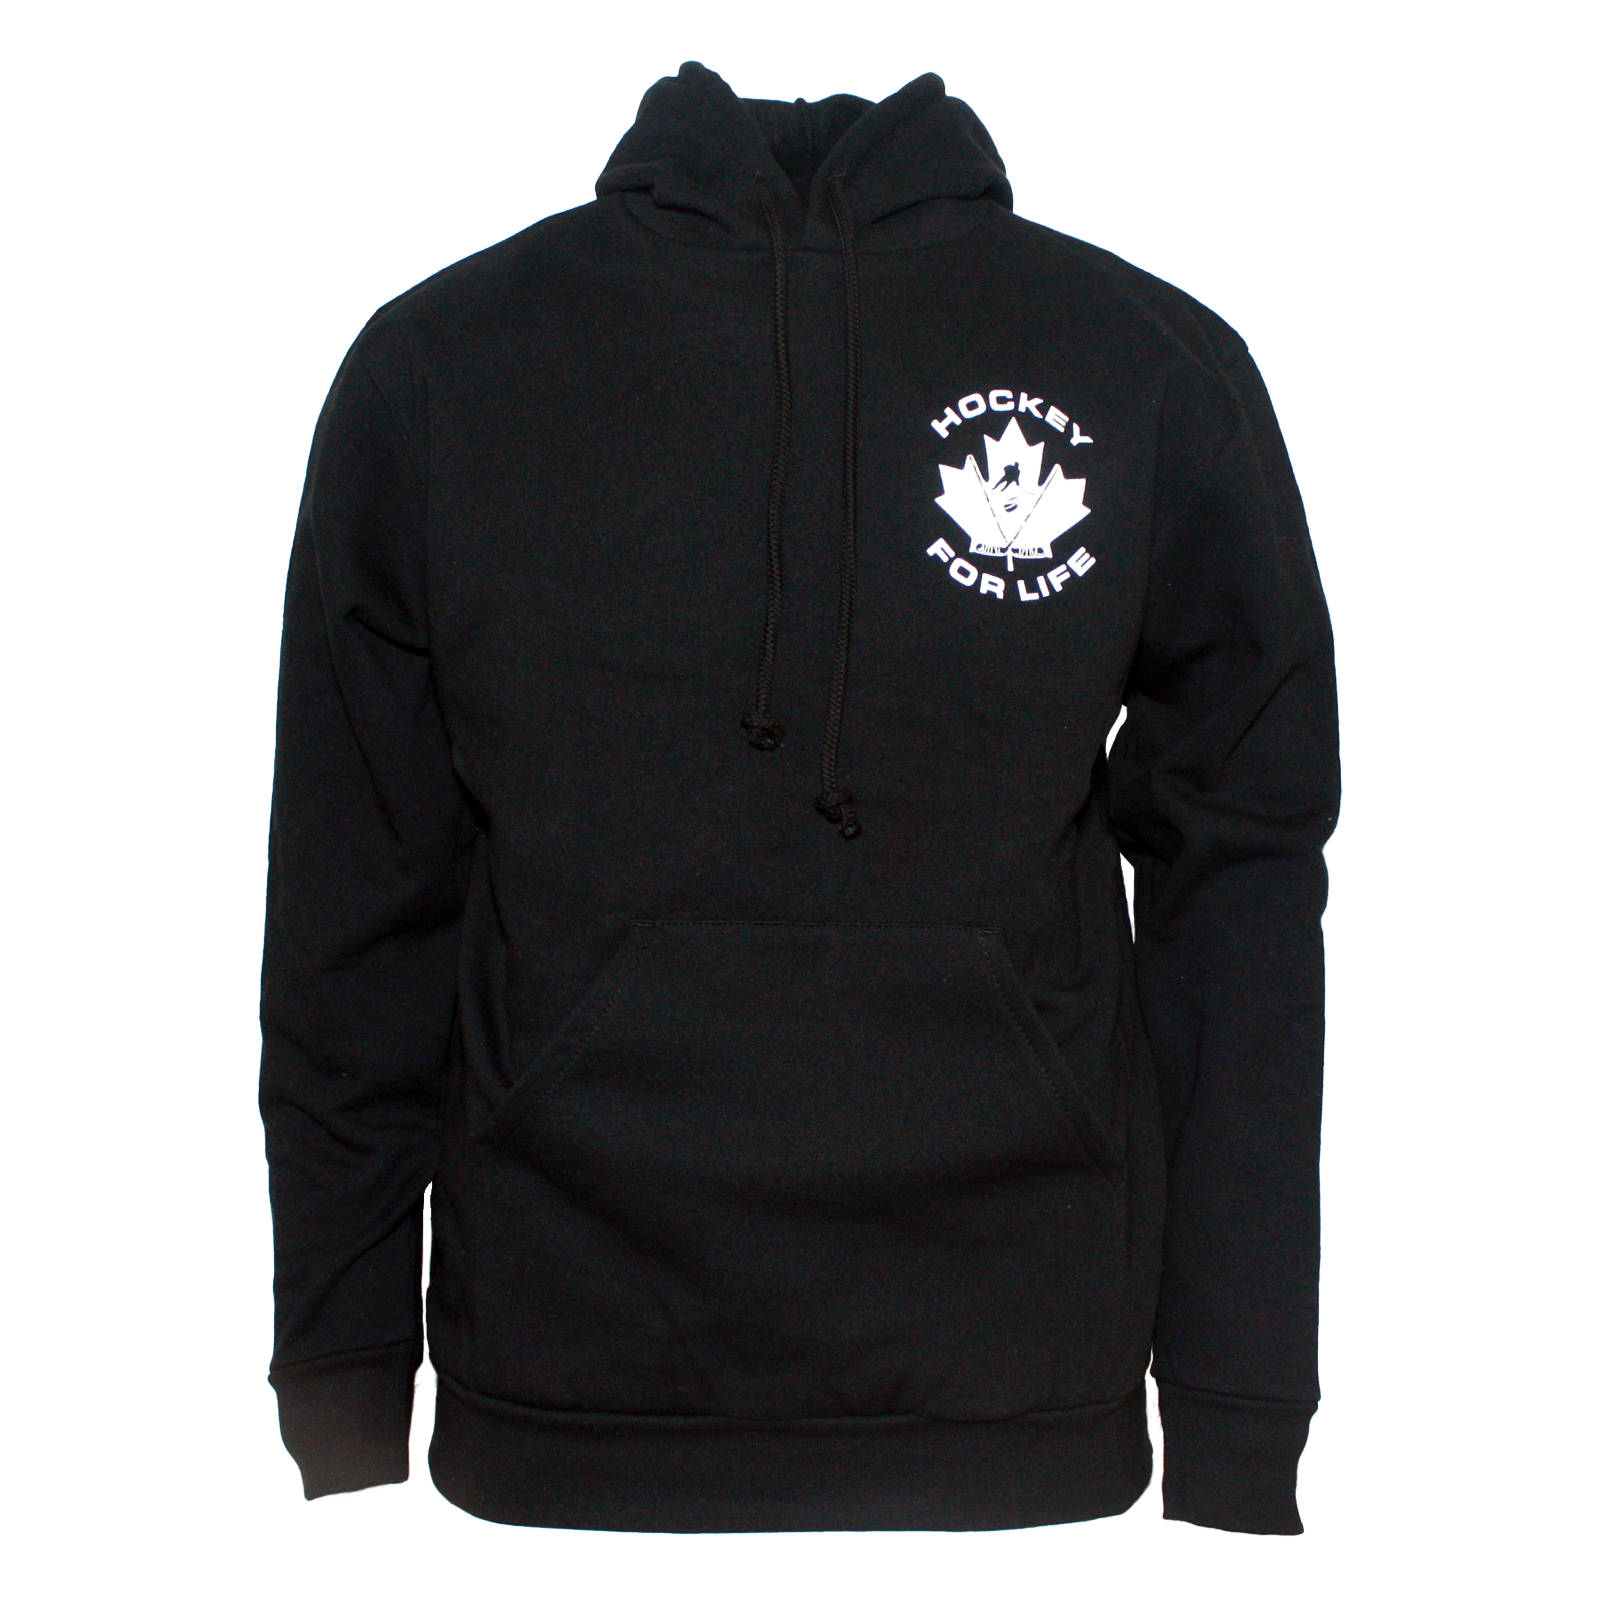 Hockey For Life Hoodies - Frocked Up Clothing Co.